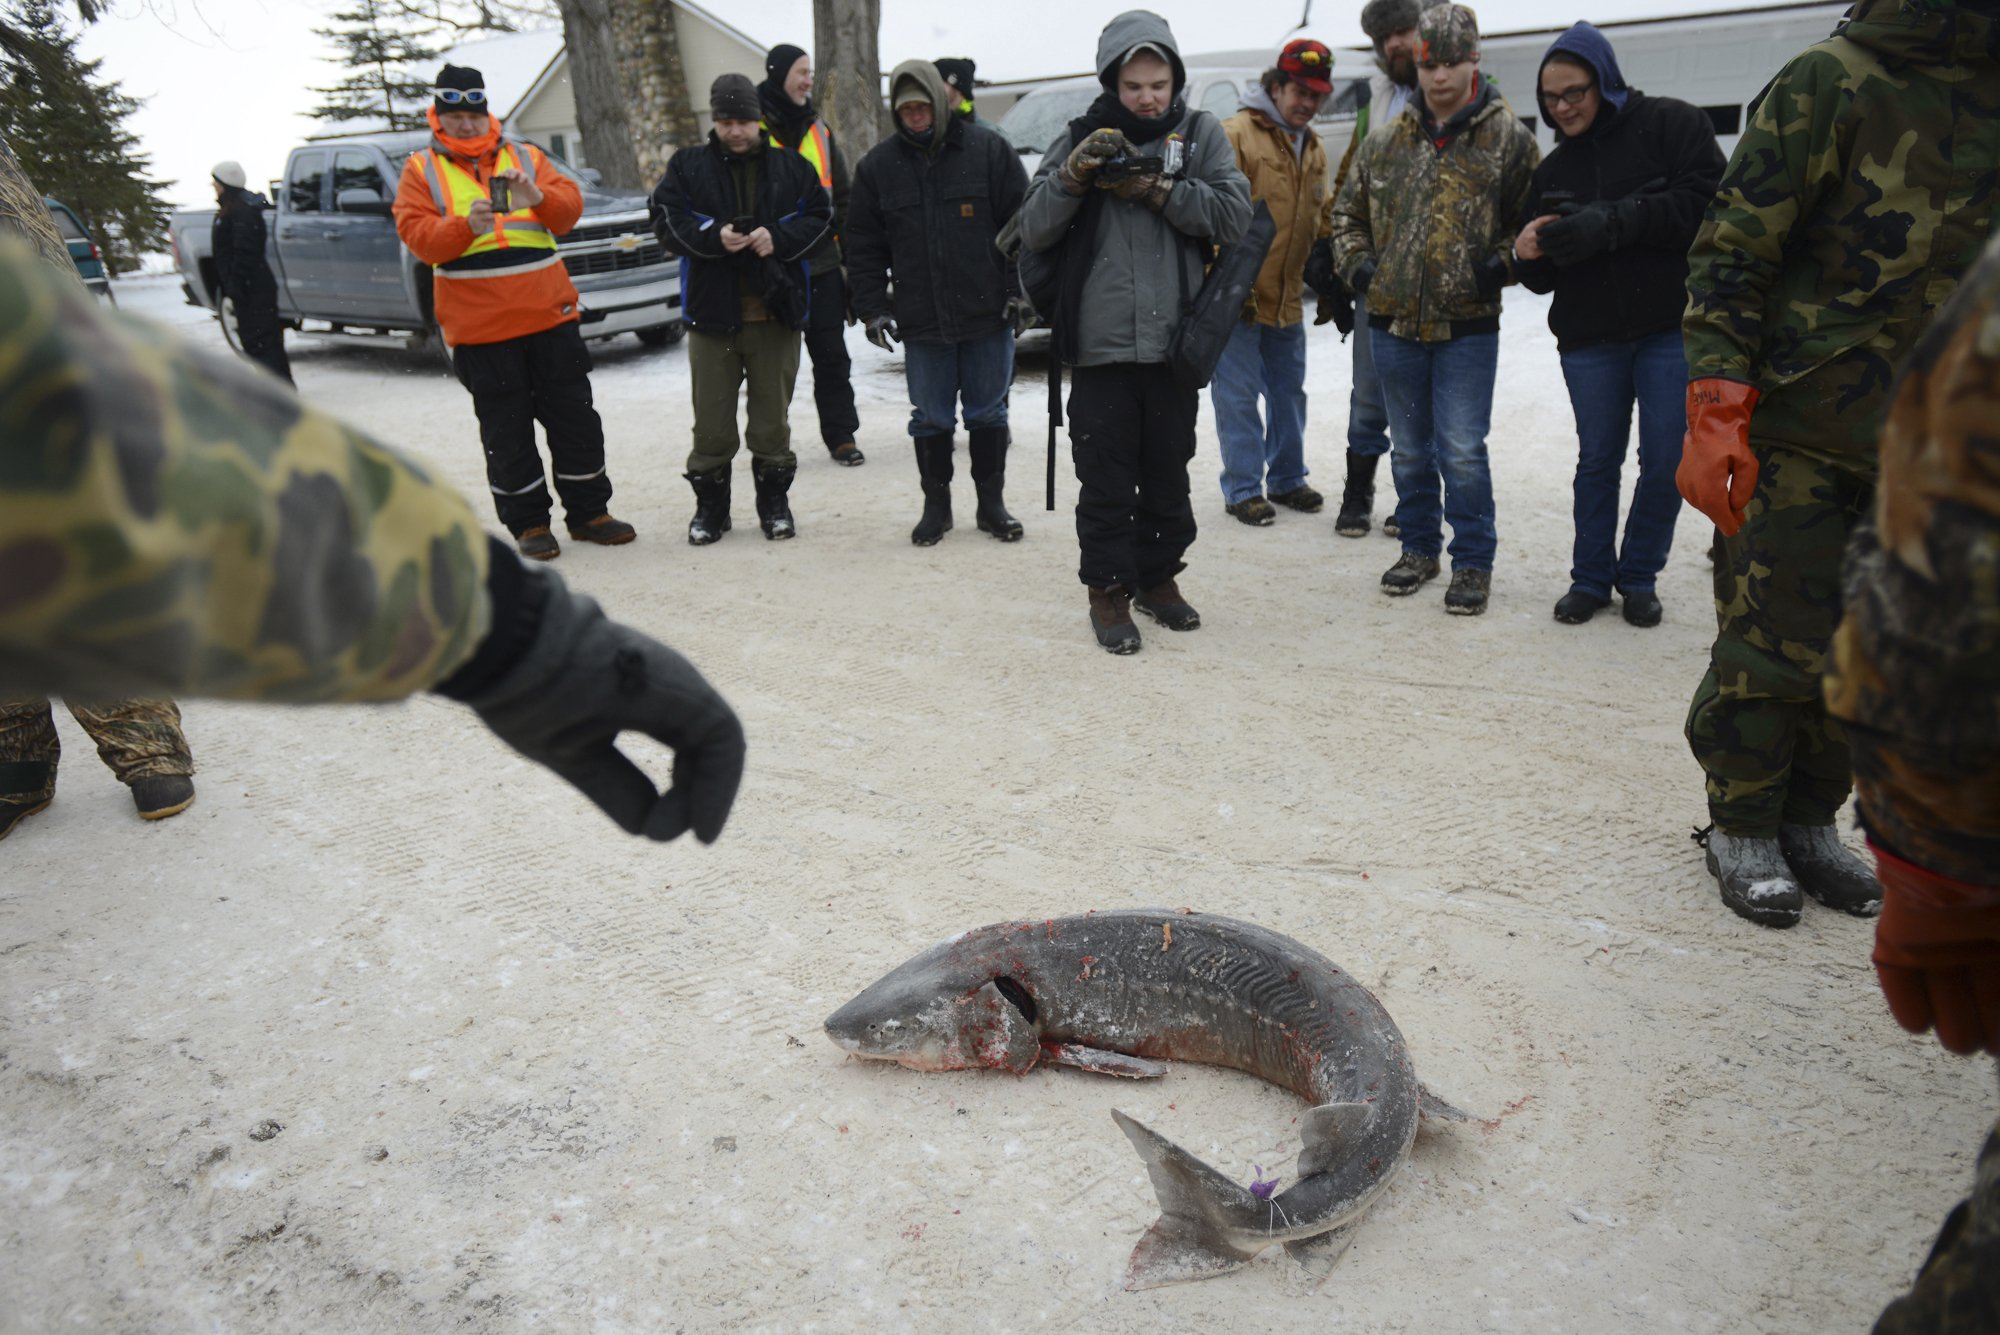 Federal agency to consider protections for lake sturgeon